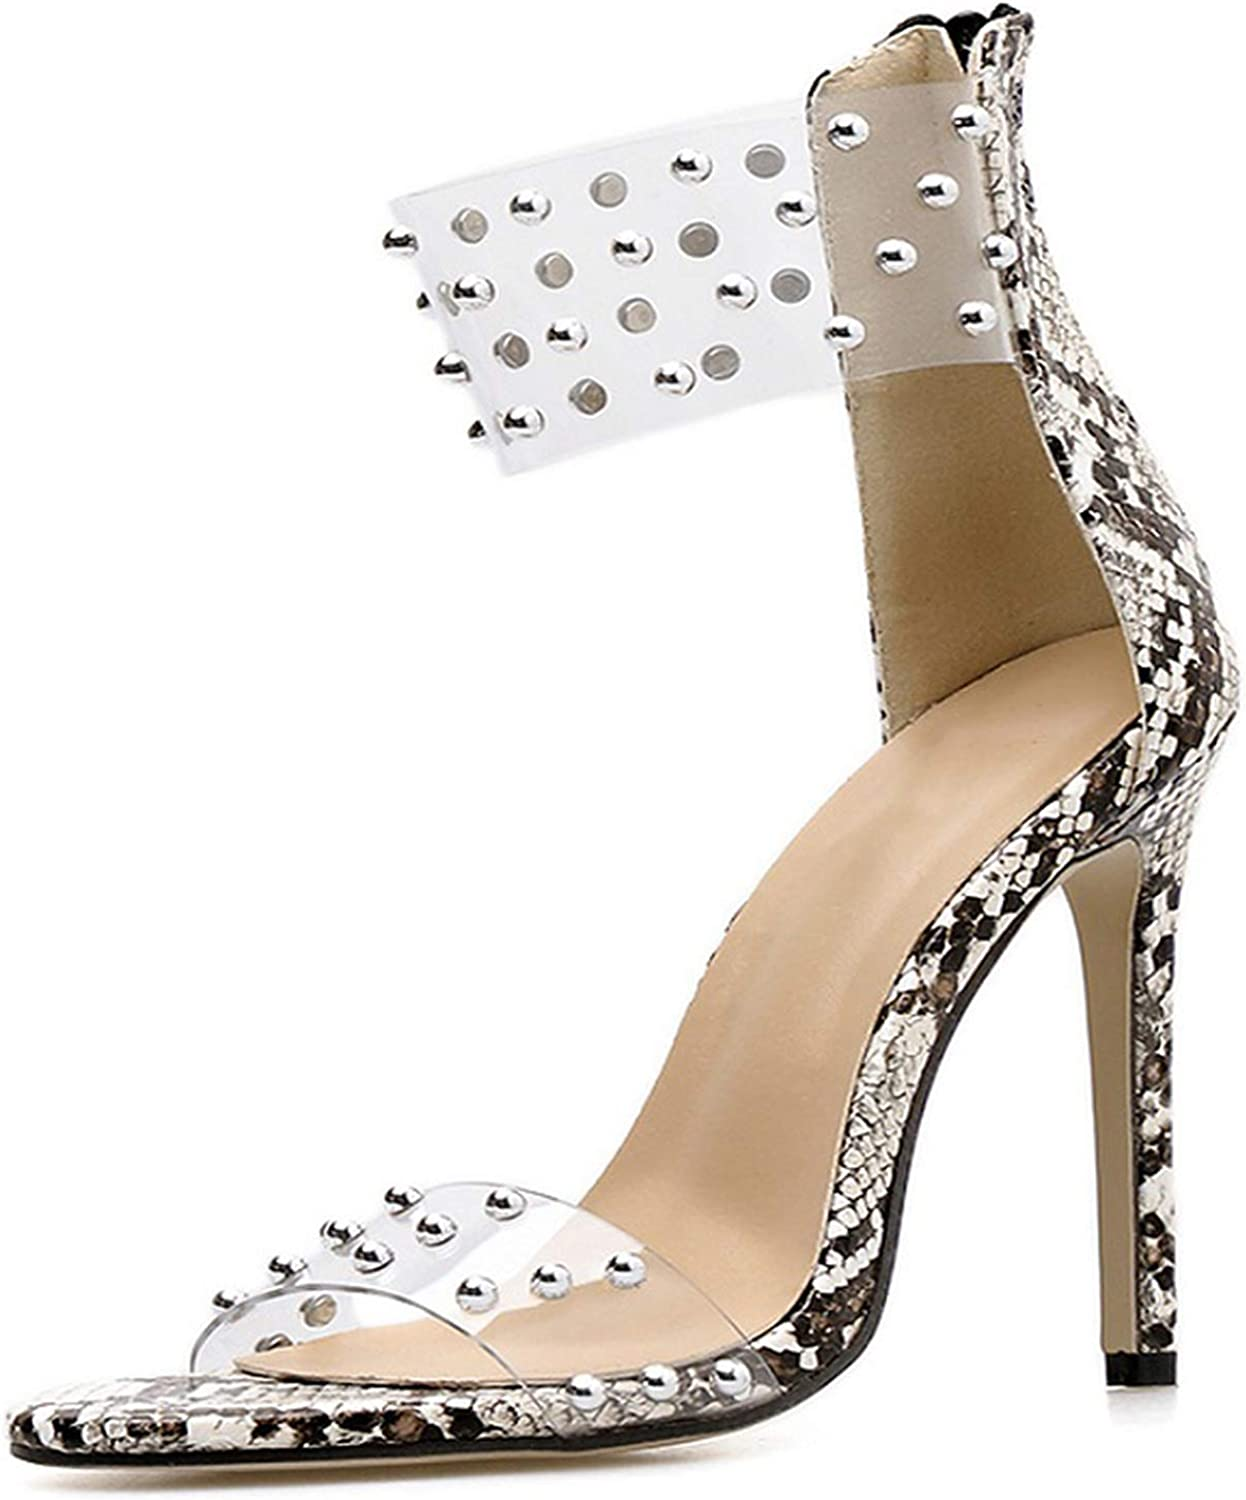 Summer PVC Rivets Sandals Party Sexy Transparent Pointed Sexy Open Toe High Heels,Snake,4